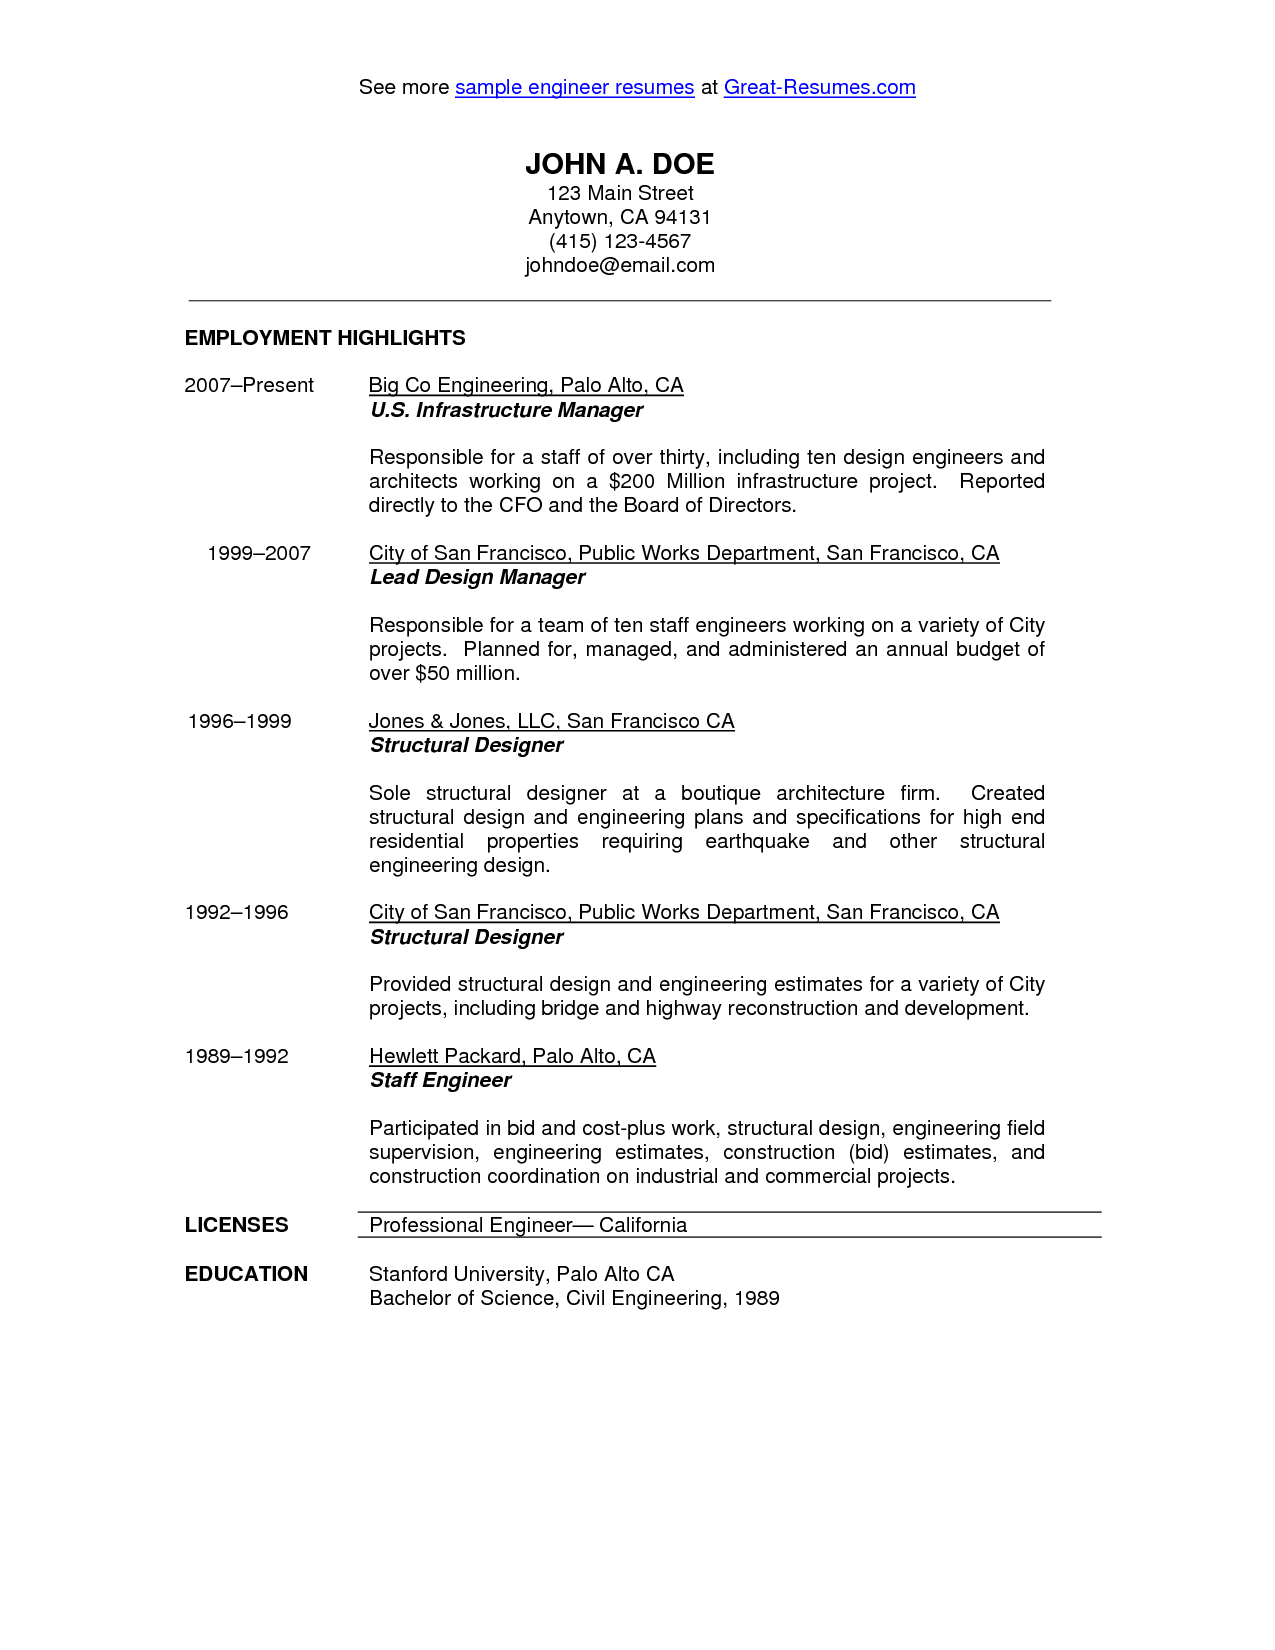 Resume Employment History Civil Engineer Resume Sample  Httpwwwresumecareercivil